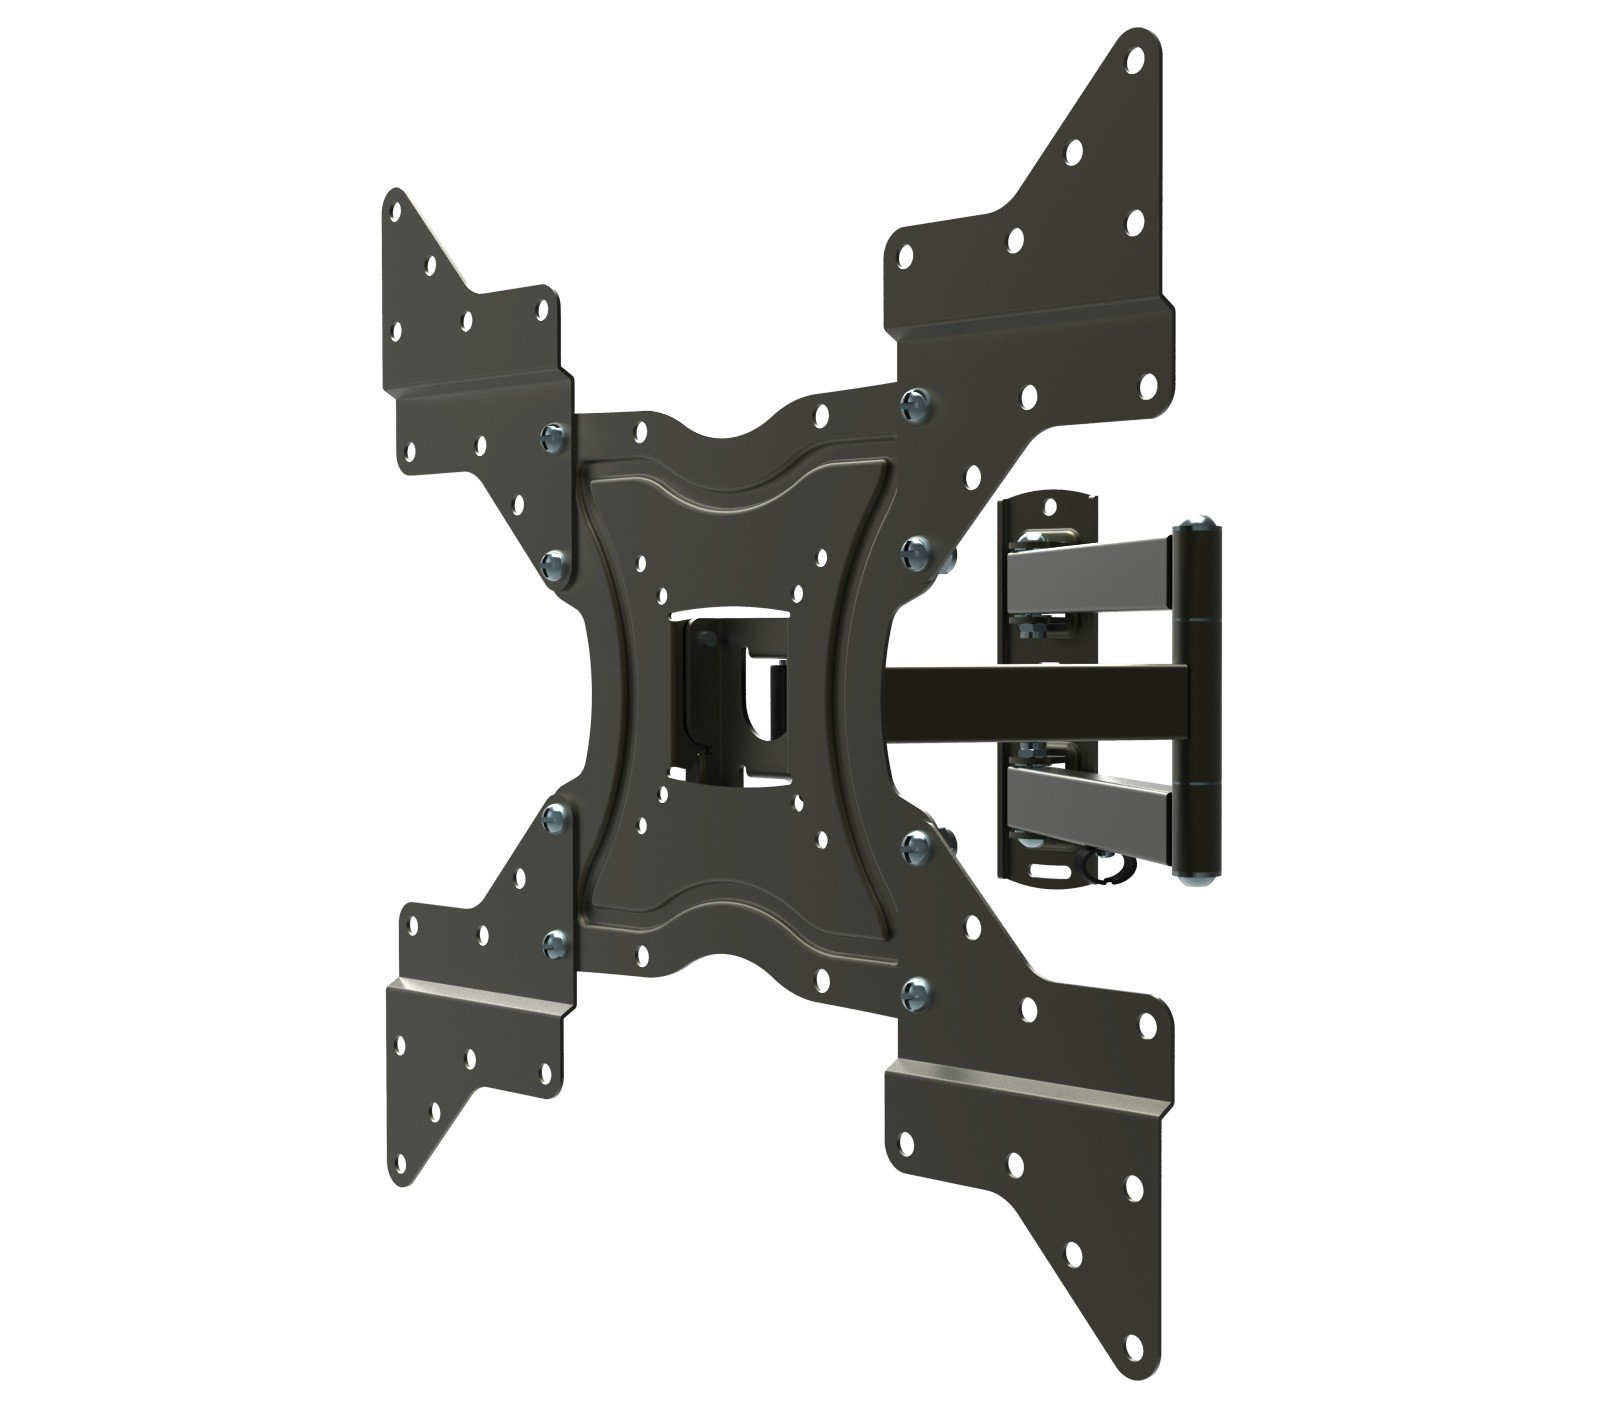 Husky Mounts 4 Universal VESA Adapters from 200x200 to 400X400 Extenders Flat Screen TV Wall Mount Bracket Extensions Allow 200x200(8x8) Plate to Reach VESA 400x400, 400x200, 300x300 up to 16''x 16''